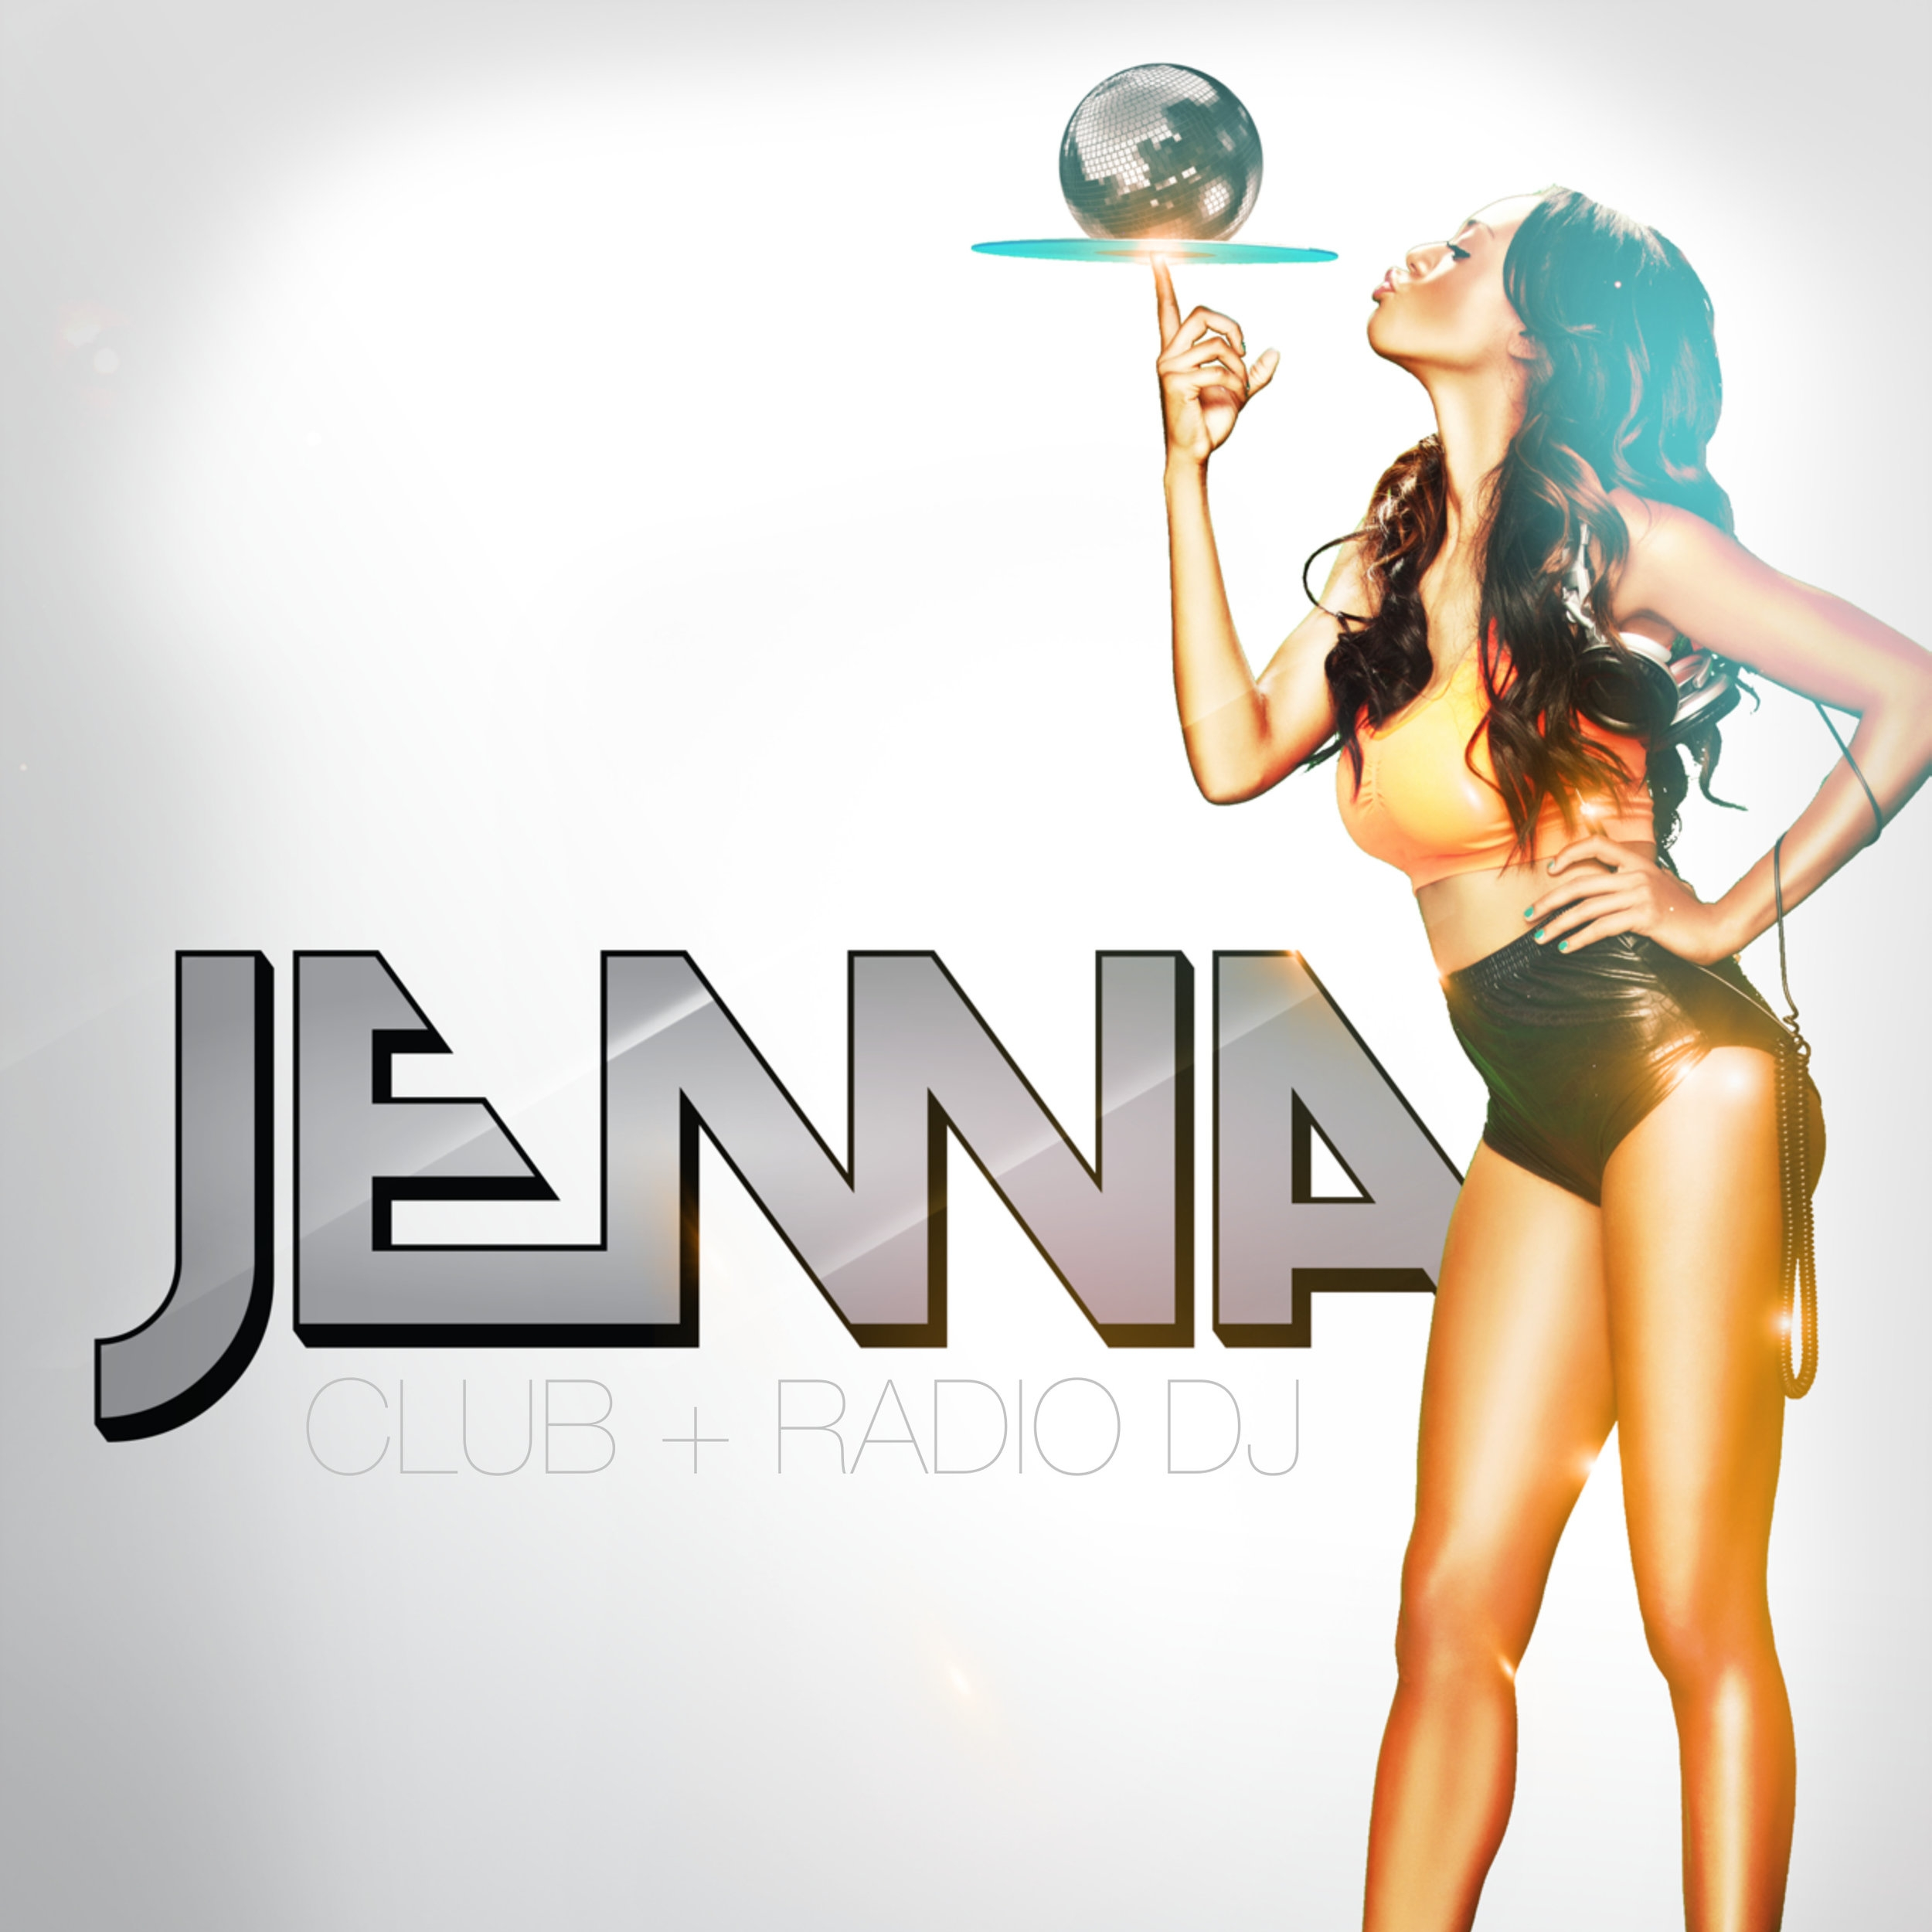 Born and raised in Las Vegas, it was inevitable for DJ Jenna to become connected with music.  She began working at The Beach Nightclub, one of Las Vegas' first night clubs, as the Entertainment Director.  She began DJing at The Beach Nightclub then gained a residency at the prestigious Wynn & Encore European pool.  DJ Jenna's knowledge of music is vast, however, her passion is electronic house music. She is known for her eclectic high-energy music selection.  DJ Jenna is the only female to mix for the number one radio station in Las Vegas with over 500,000 listeners each week, 98.5 KLUC (a CBS radio station) Afterhours show, CLUB 985